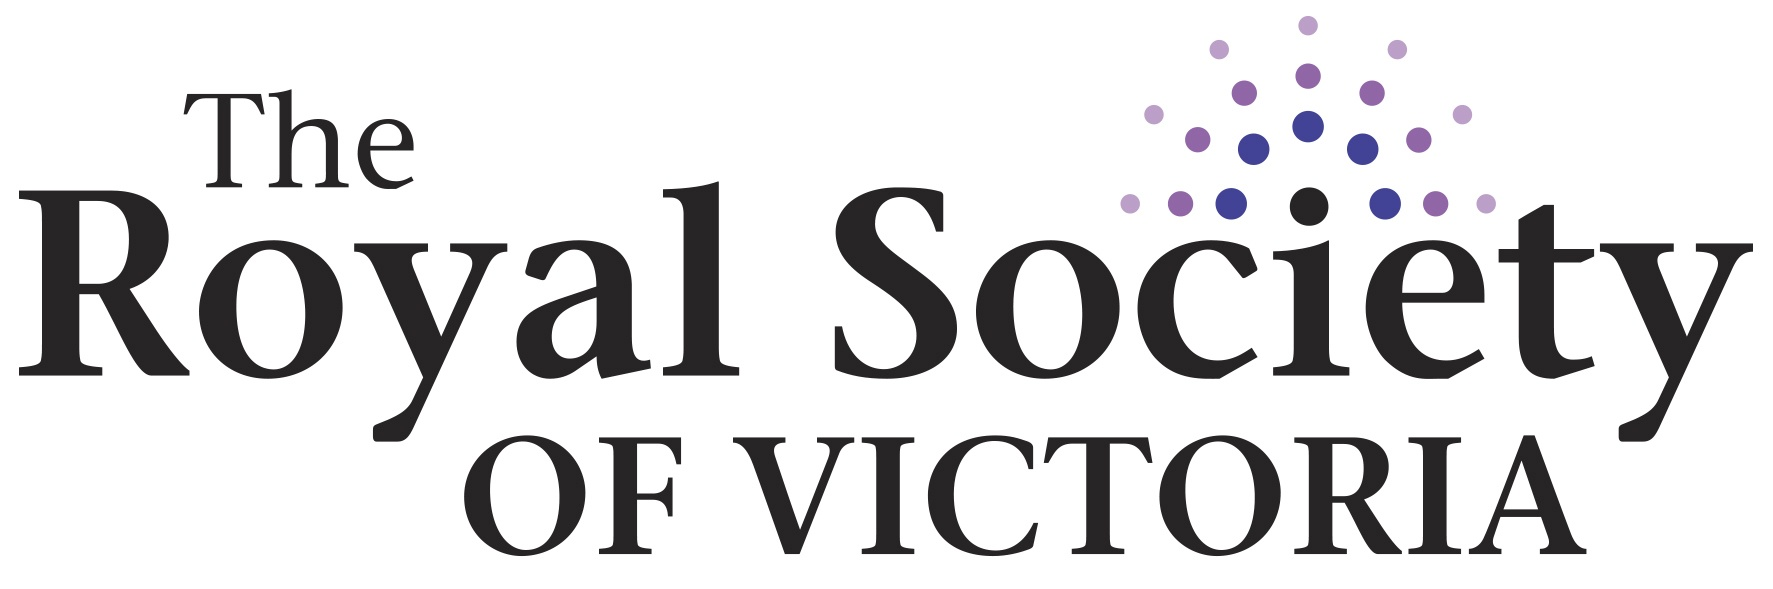 Royal Society of Victoria logo